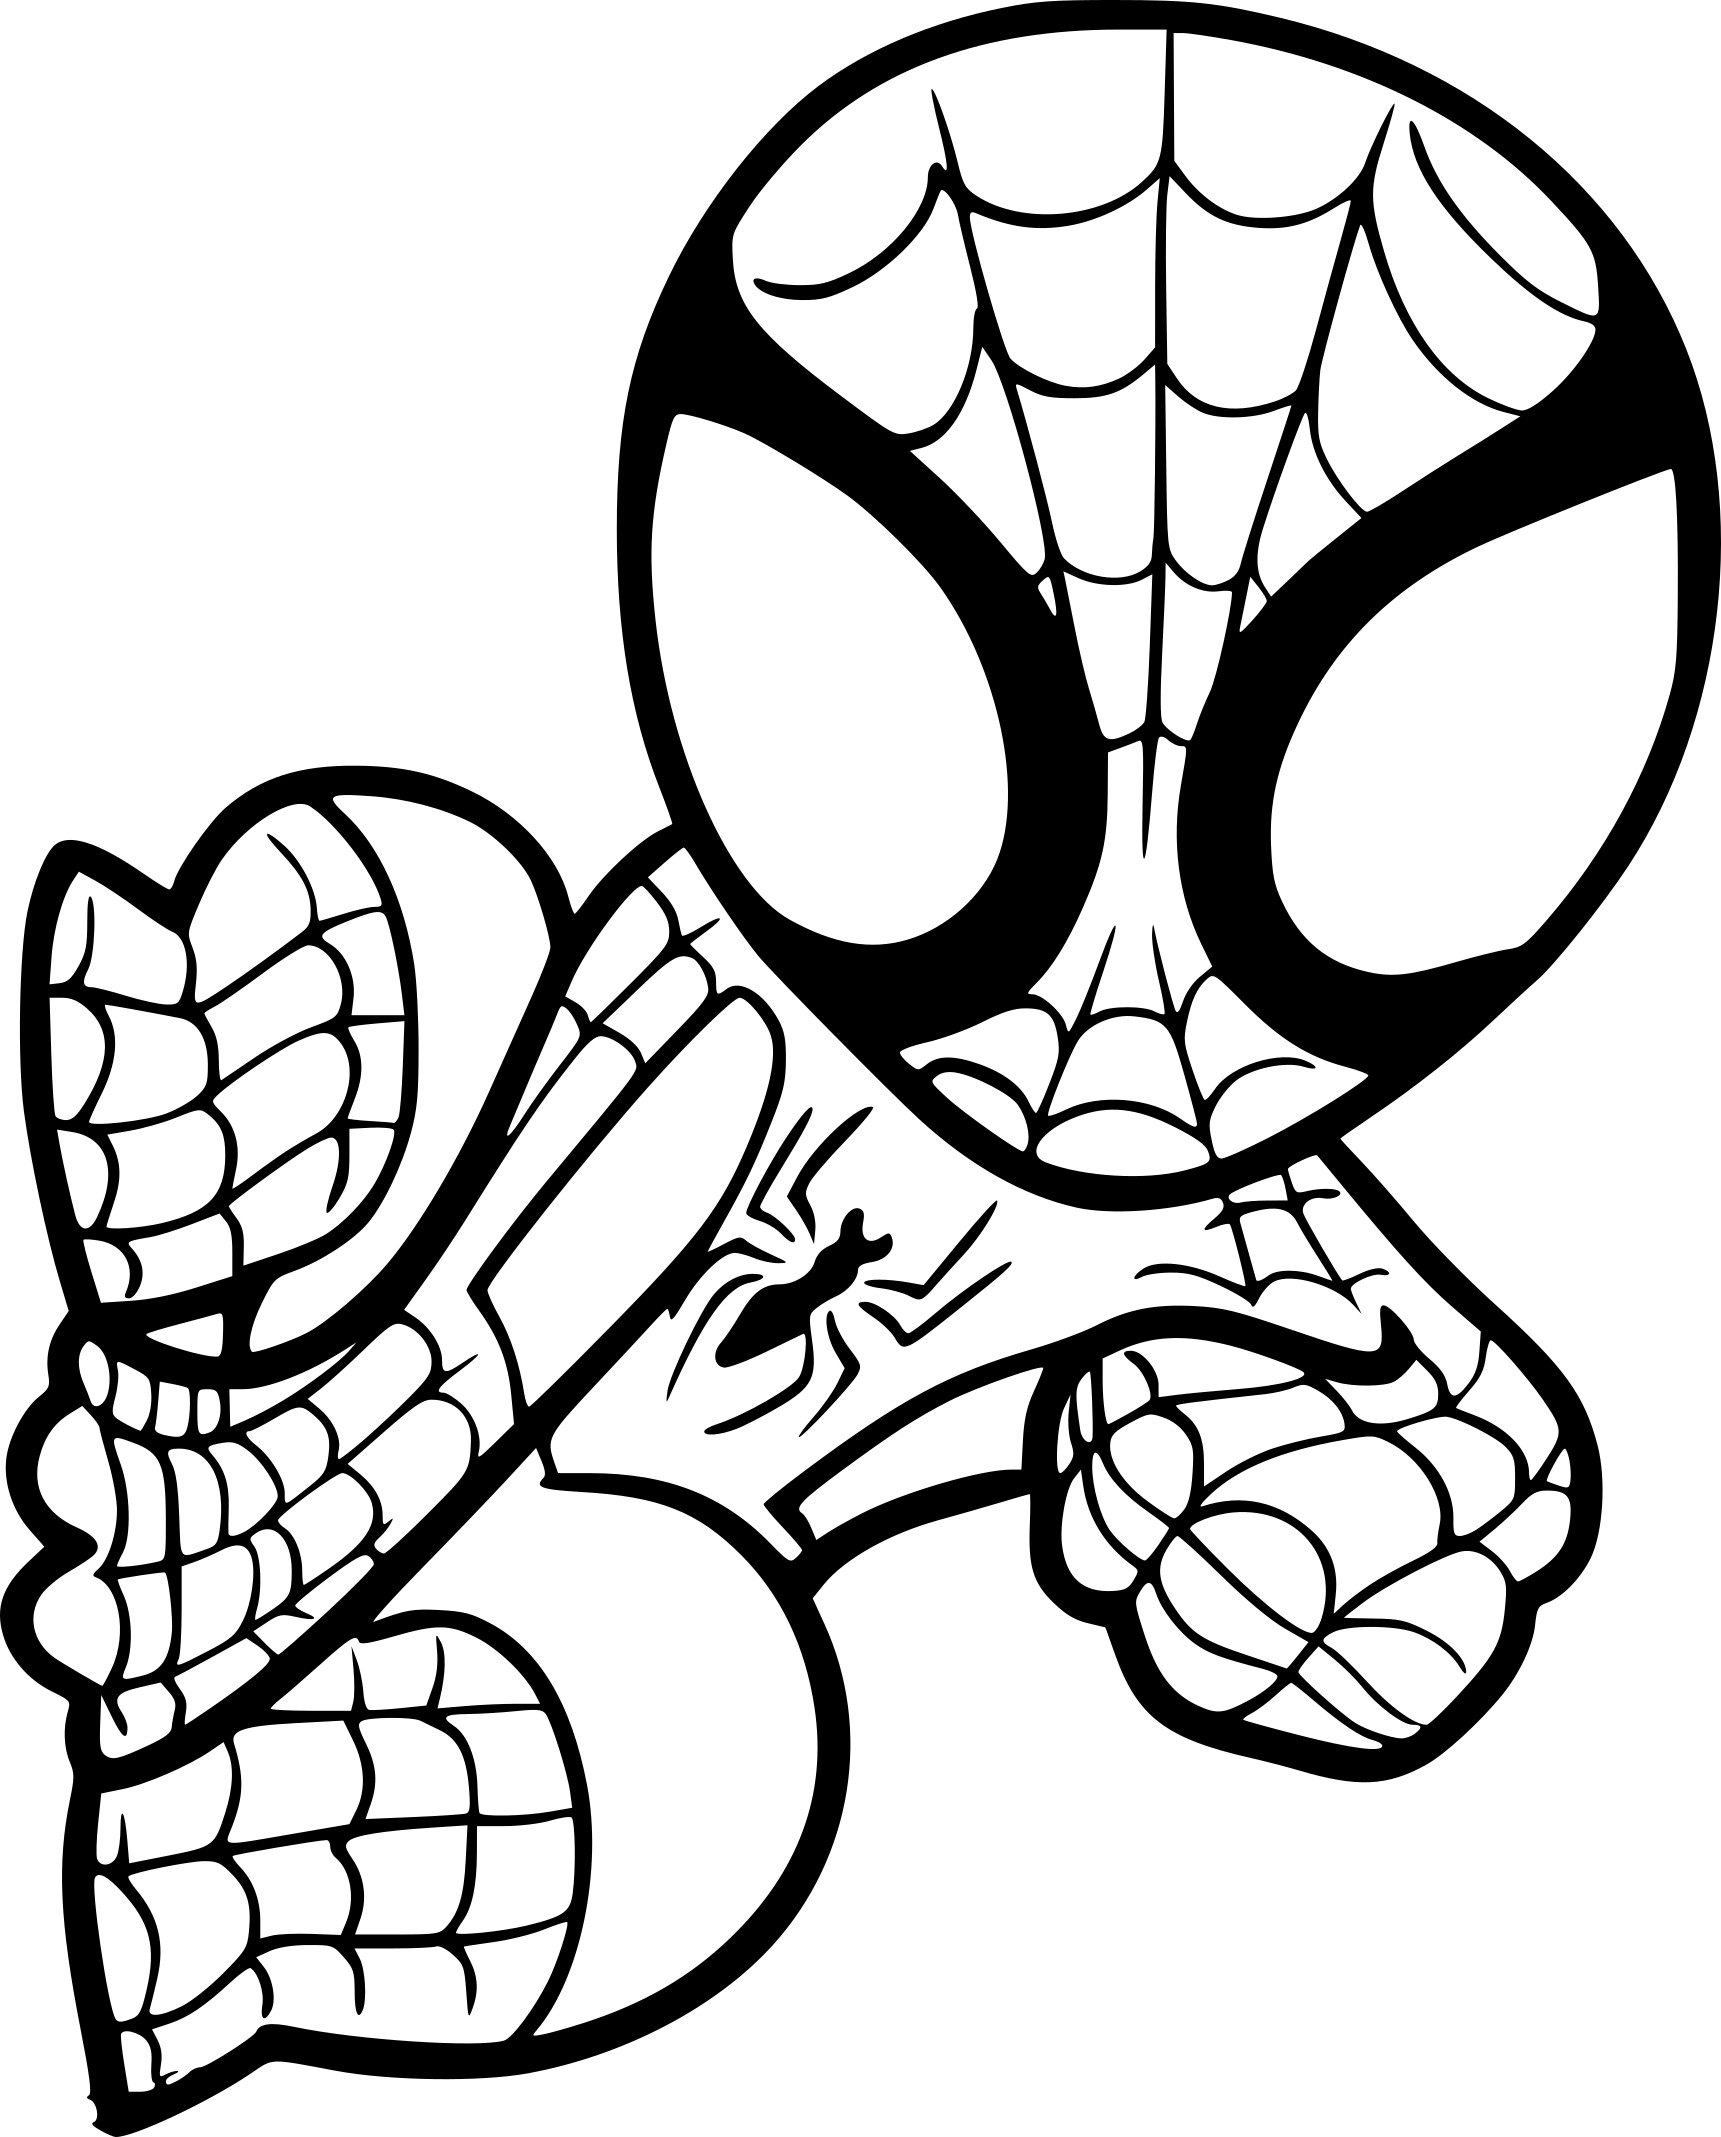 Coloriage spiderman facile imprimer sur coloriages info - Dessin spiderman facile ...